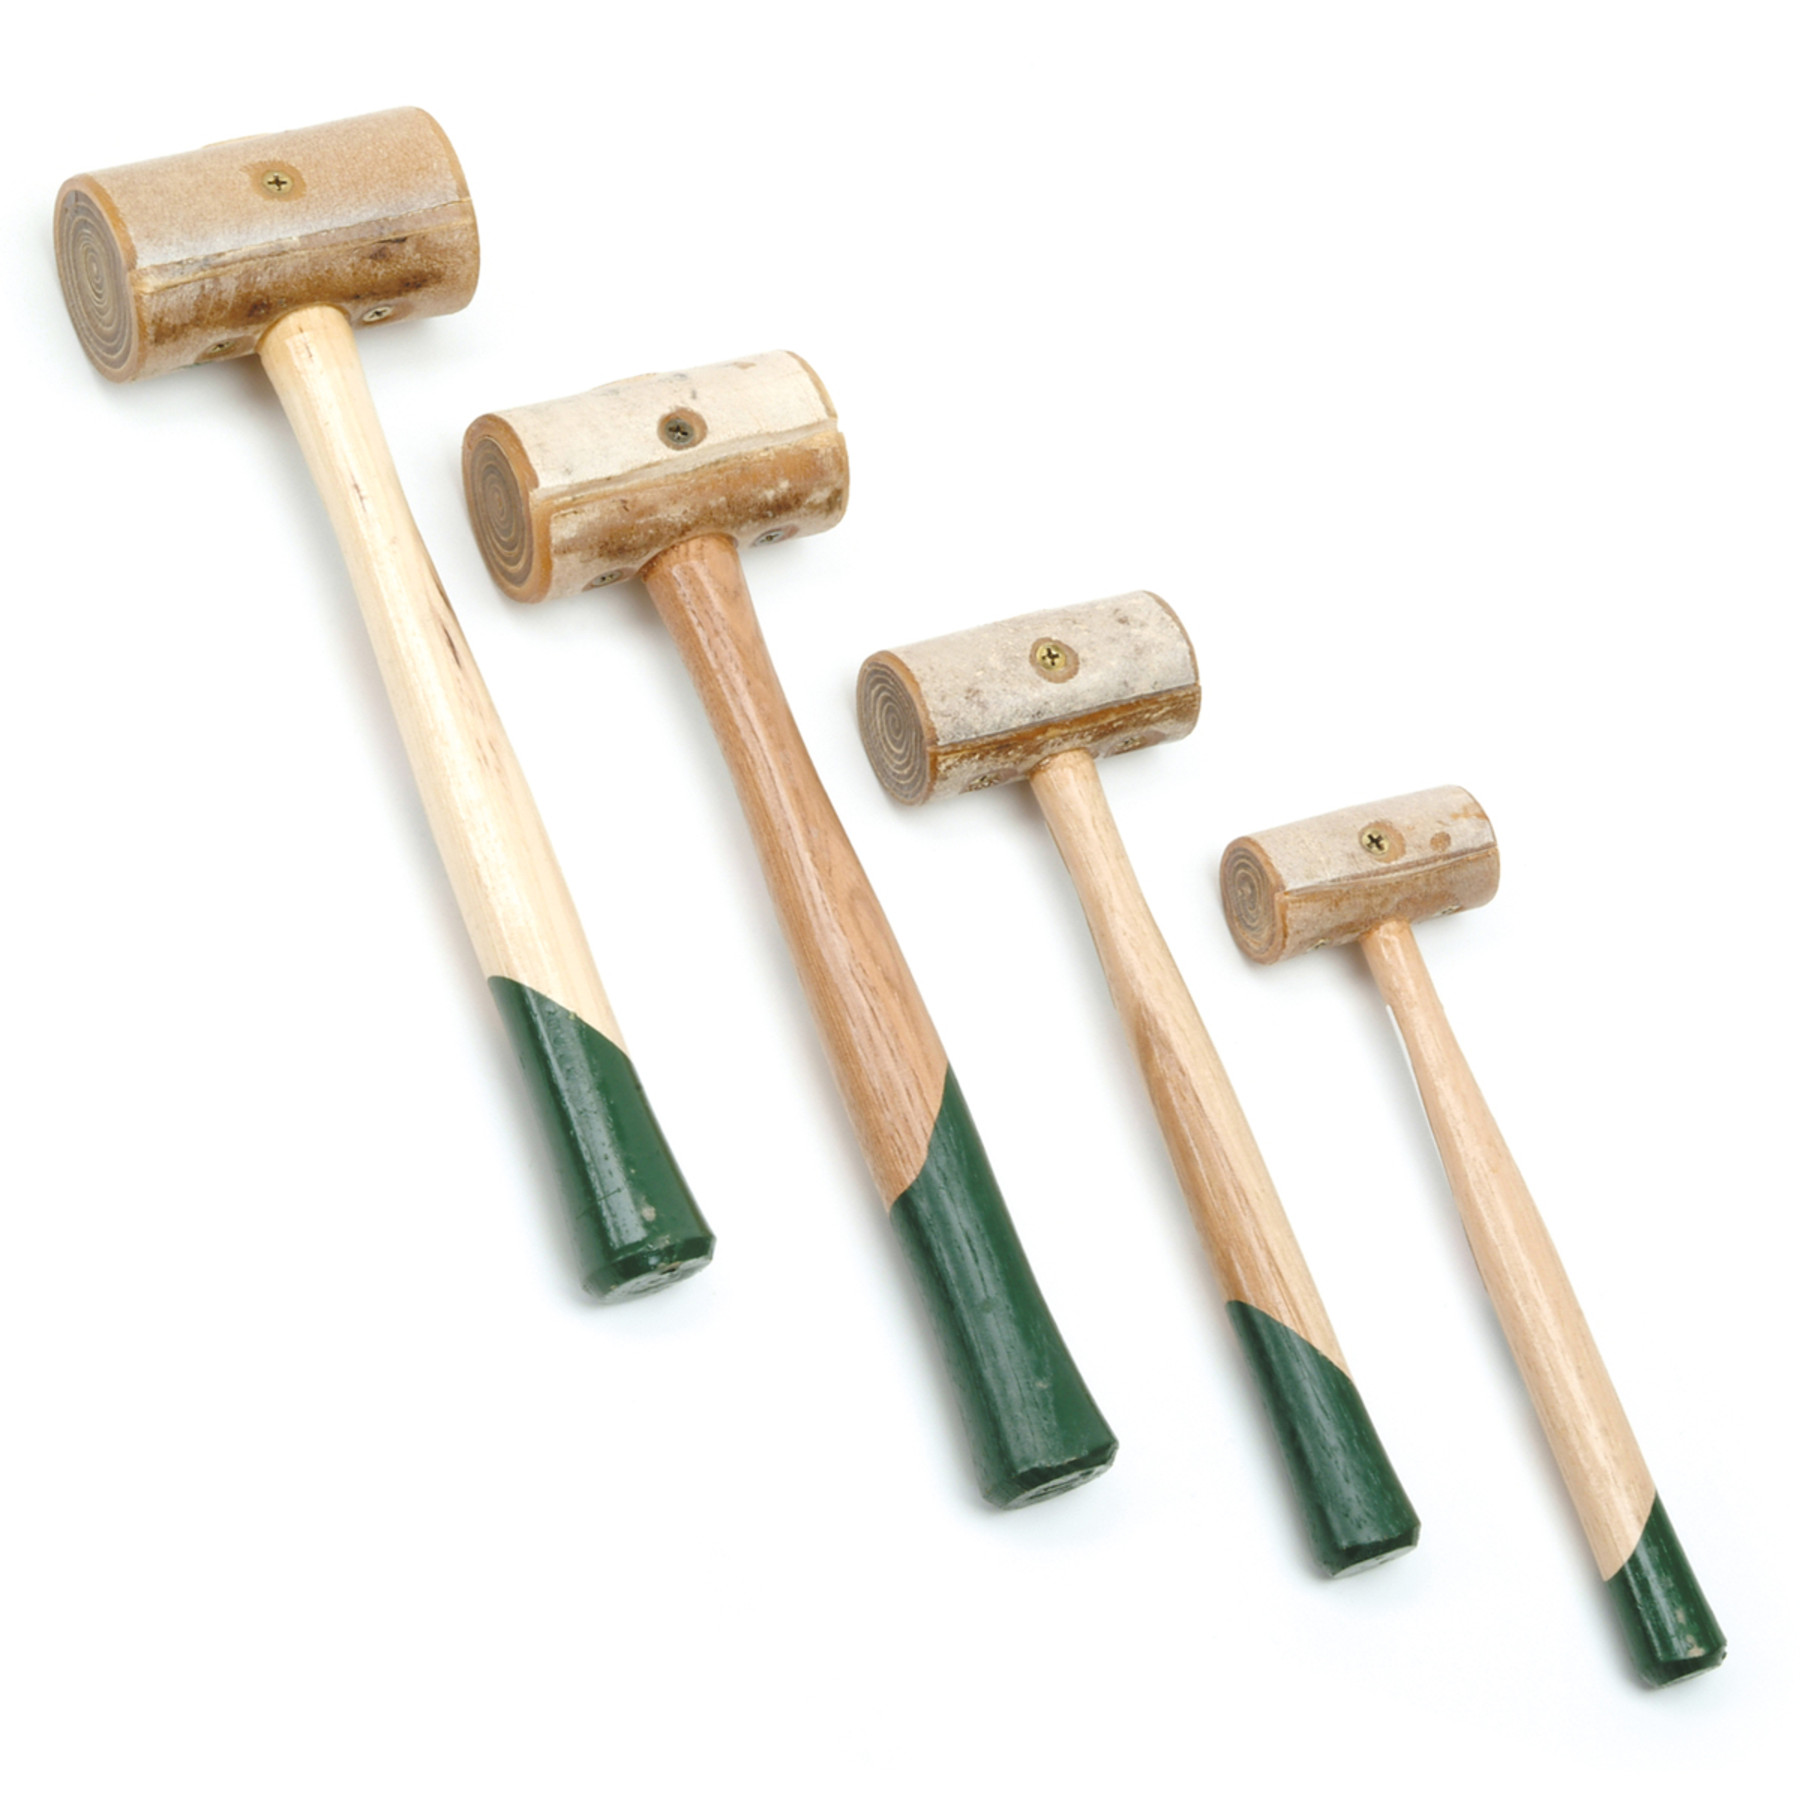 Rawhide Mallets - Lead Weighted